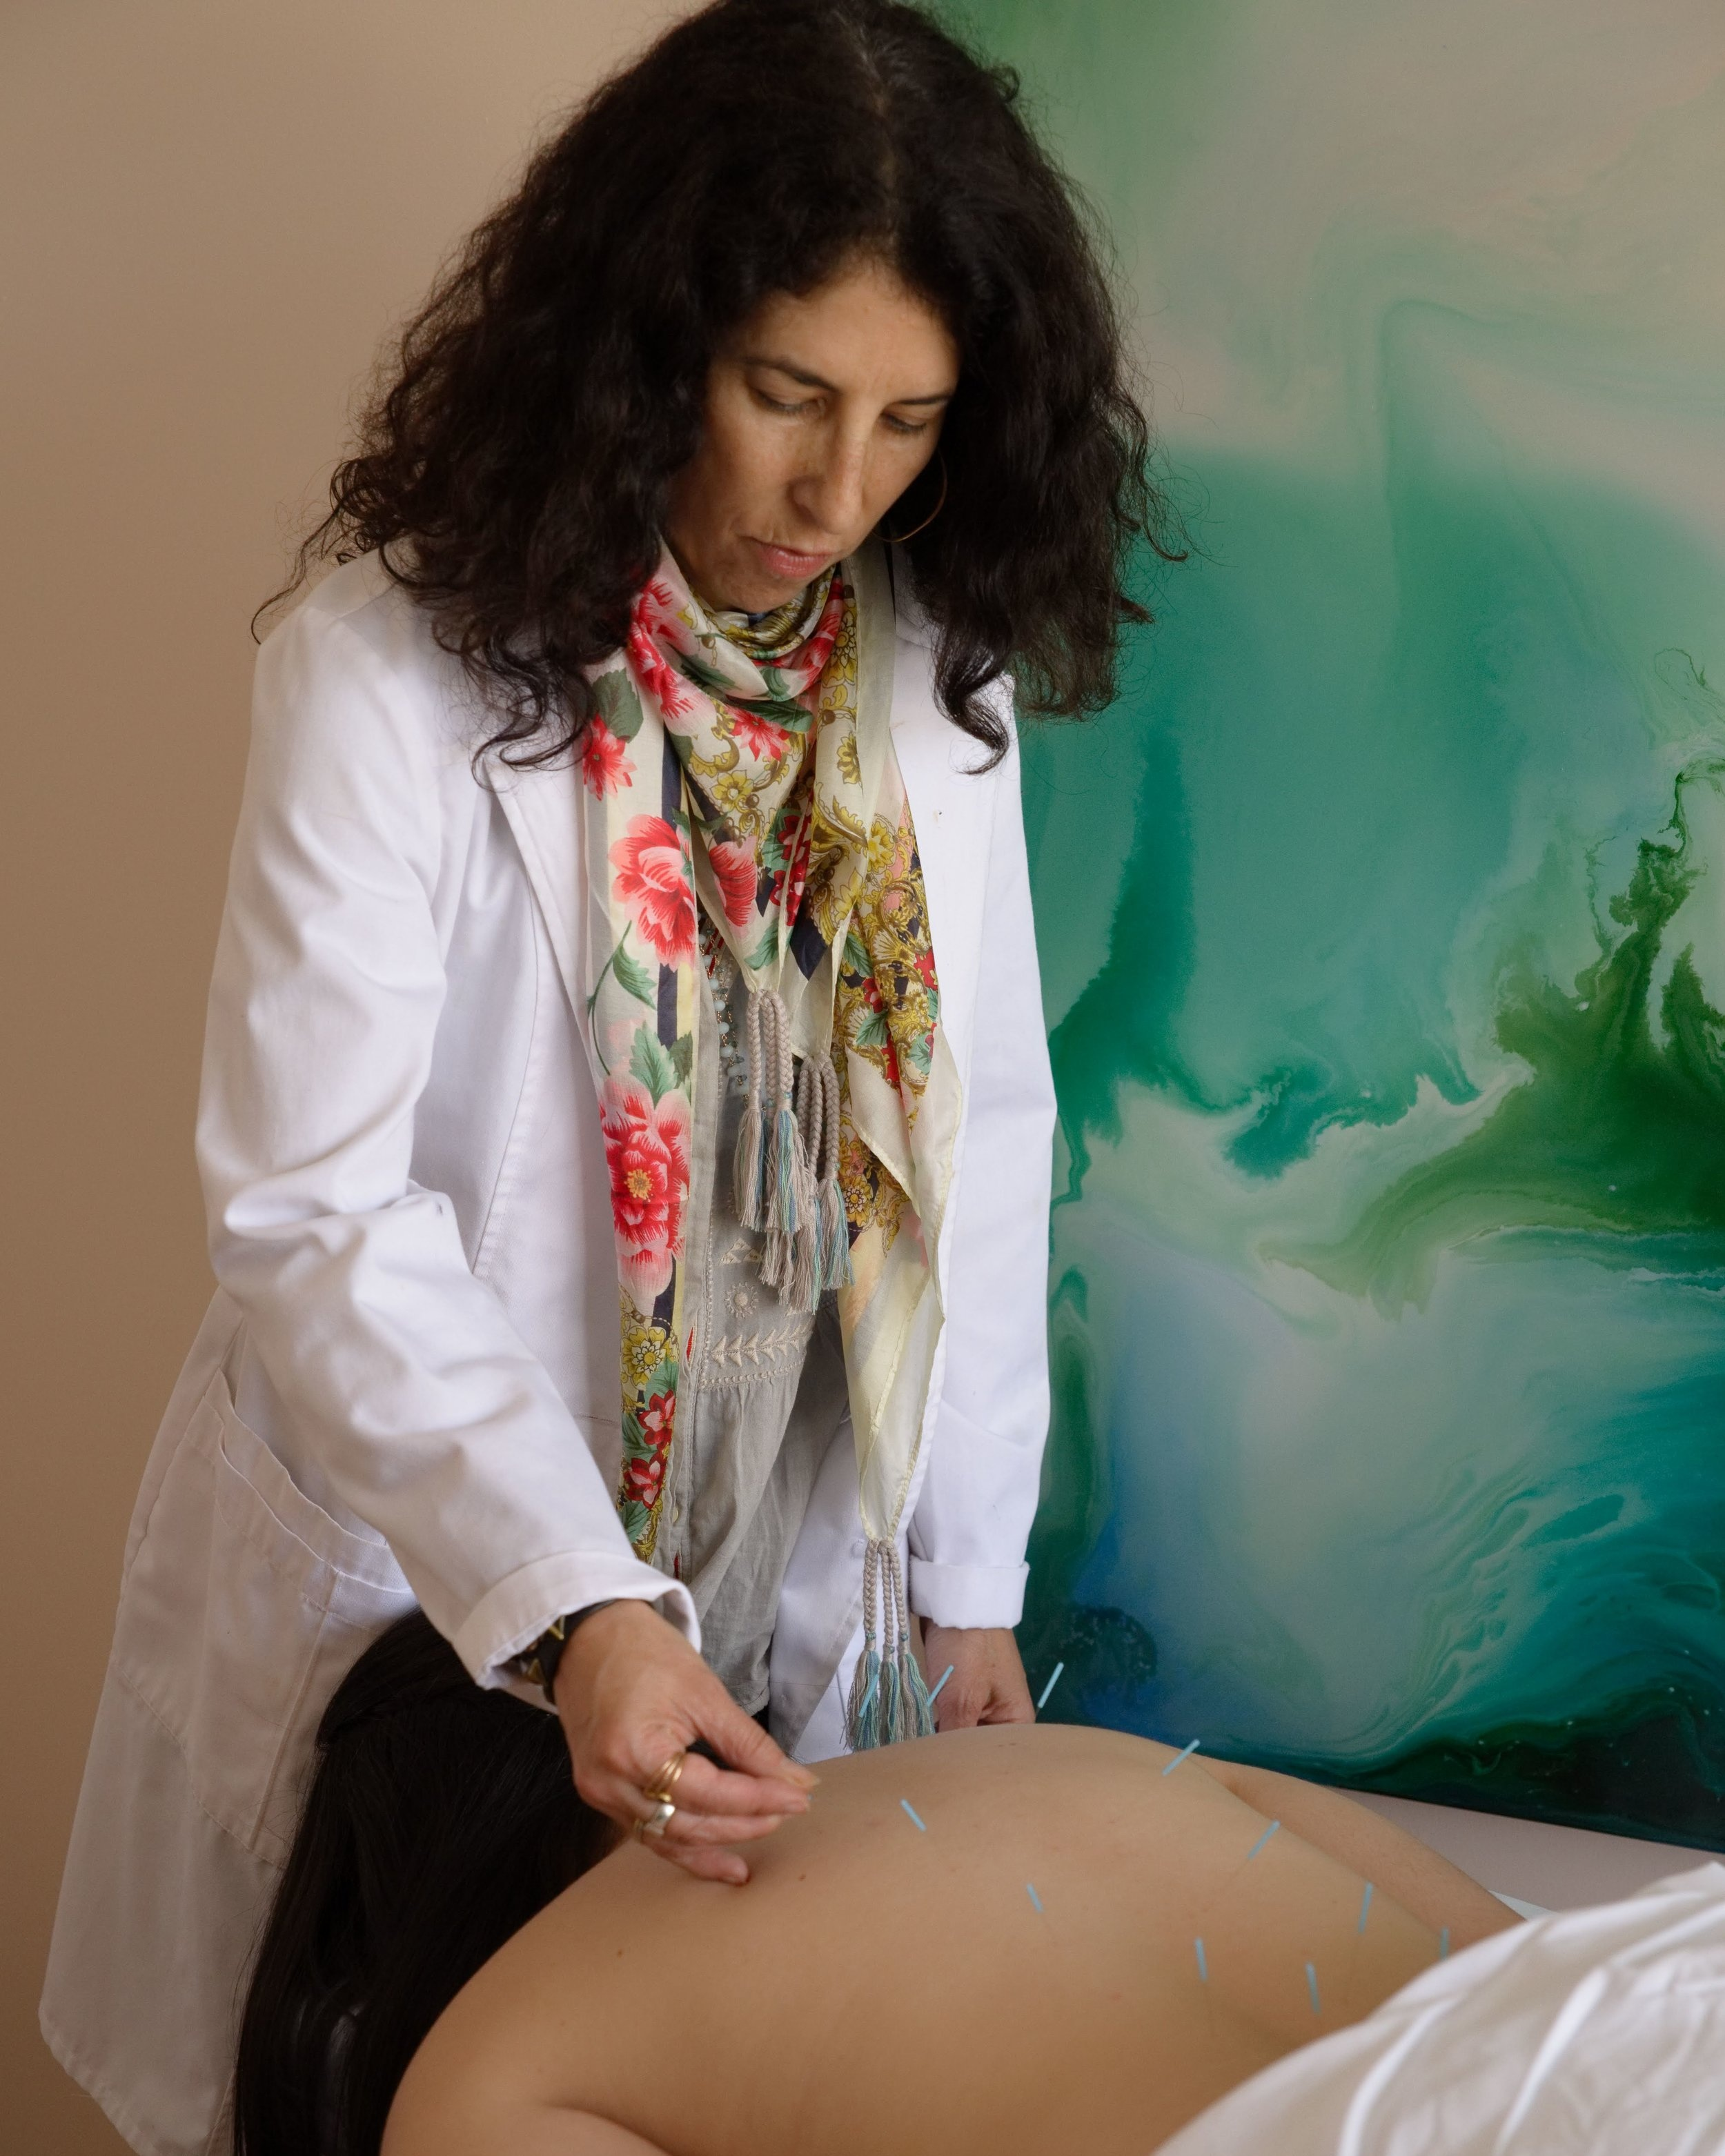 Denise Wiesner, Chinese Medicine Practitioner, performing acupuncture on a patient